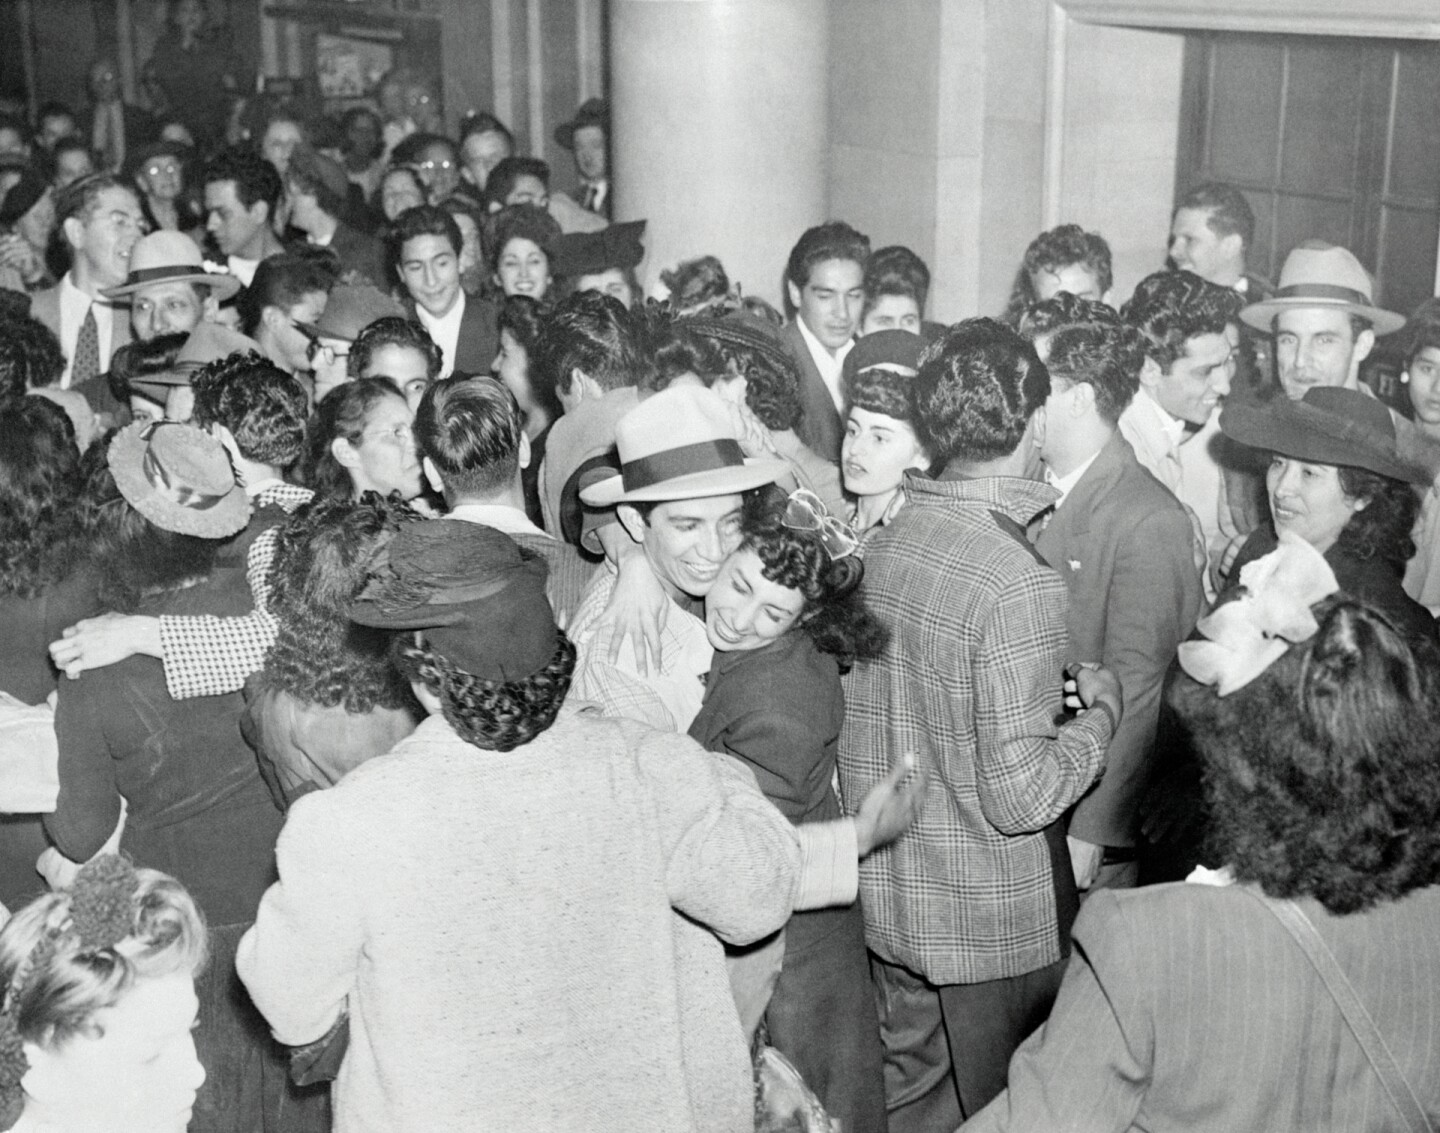 Zoot suit rioters/pachucos acquitted, 1944.